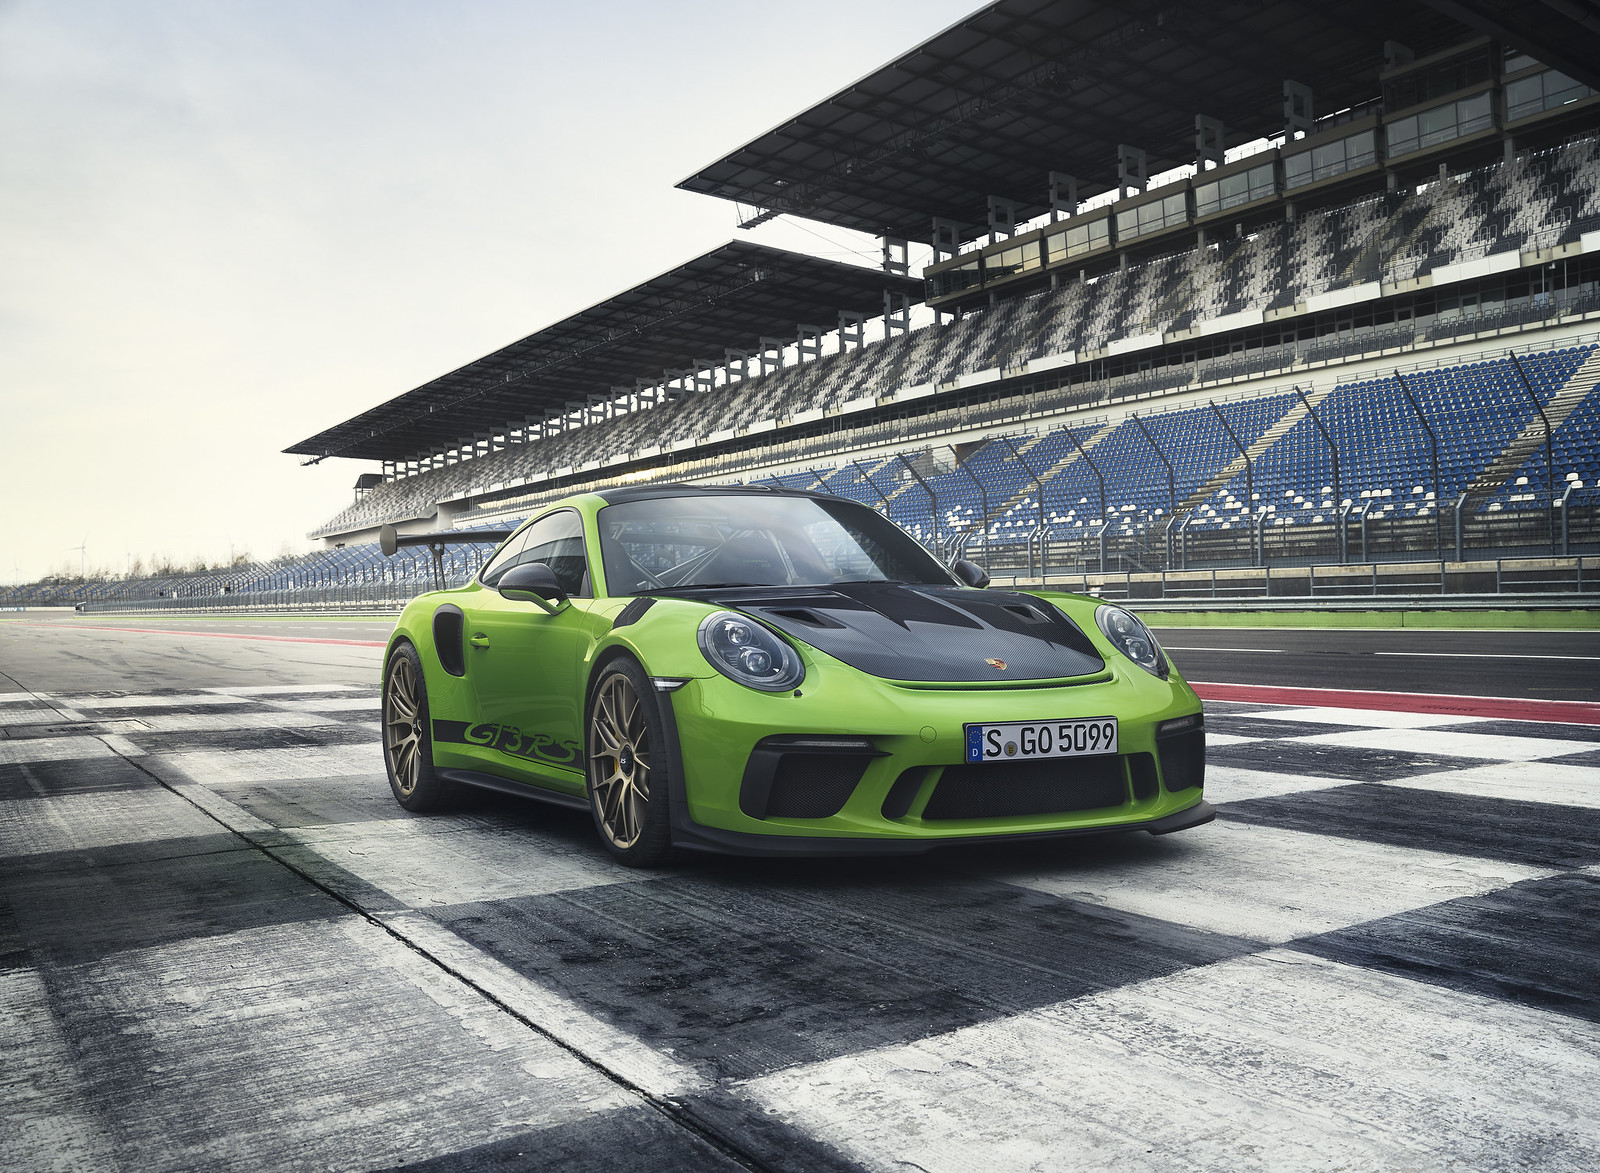 This is the 2019 Porsche 911 GT3 RS